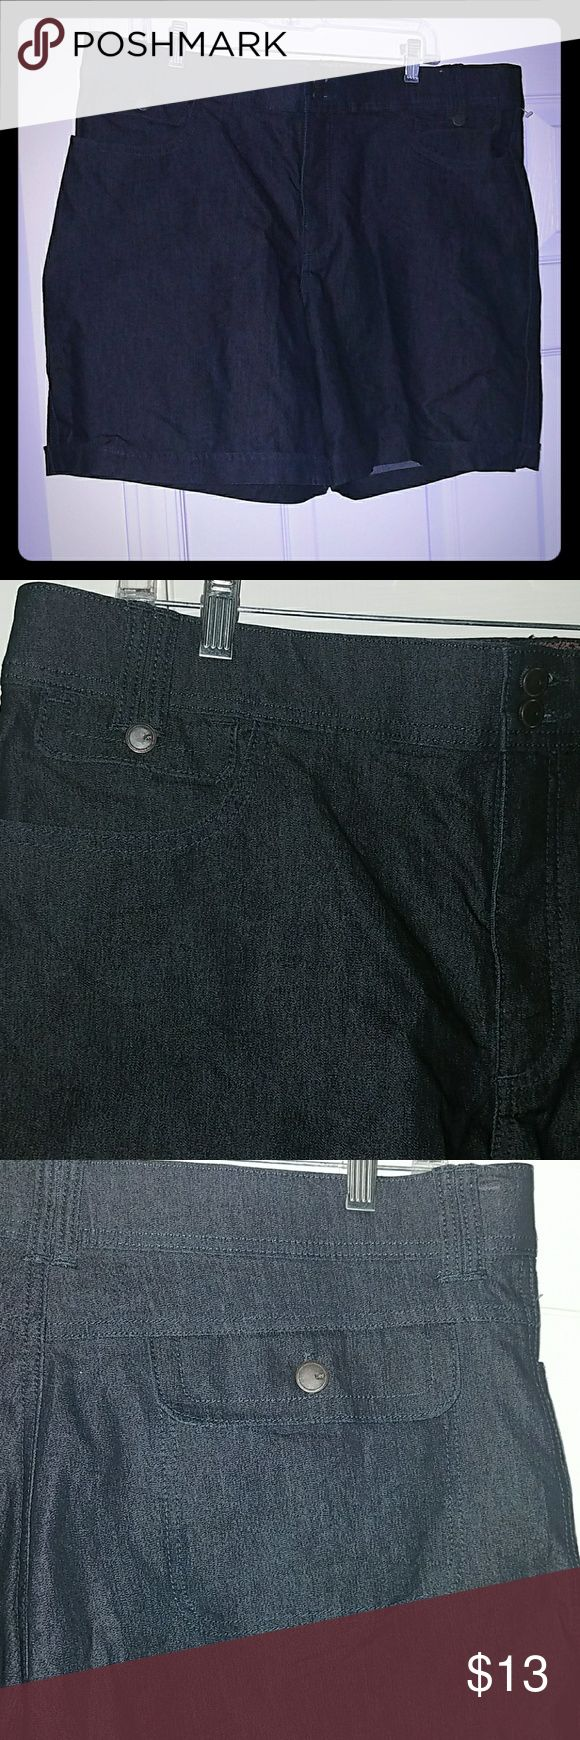 18m walking shorts 18 missy Lee comfort walking shorts. Darker blue wash stretch jean material. In excellent condition! Lee Shorts Jean Shorts